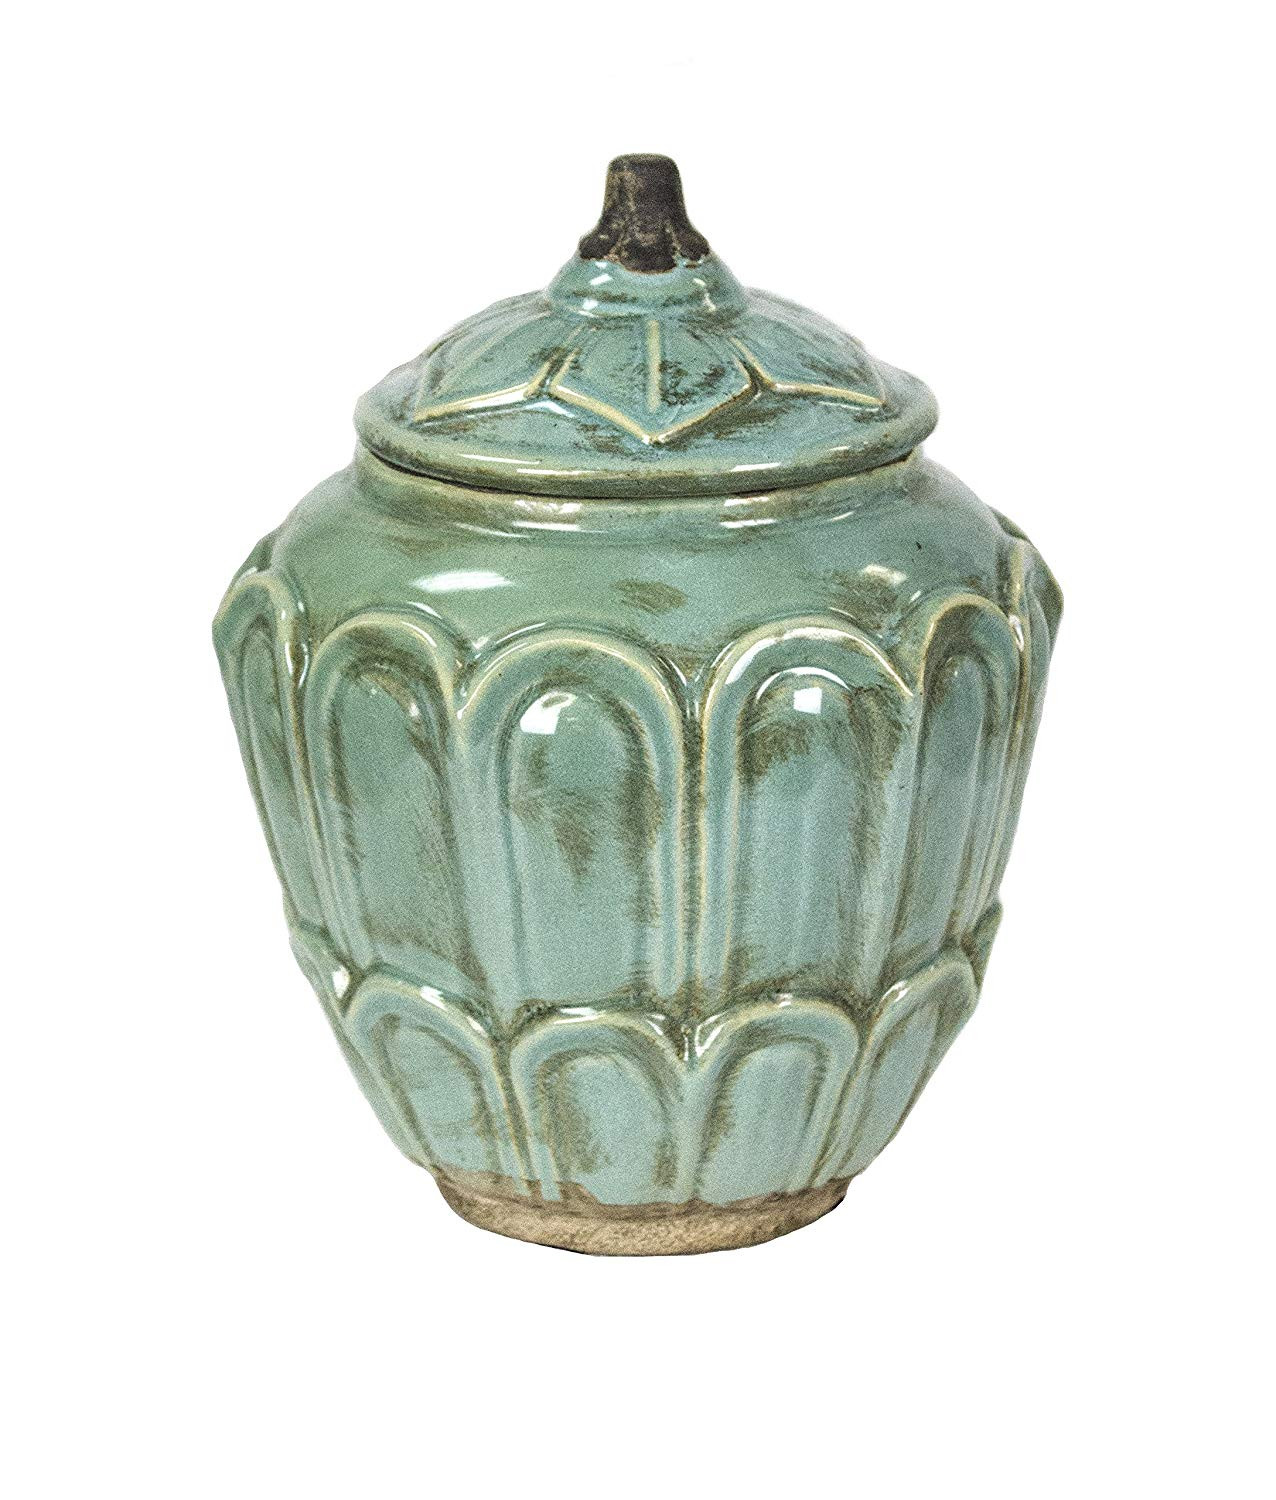 blue vase books of amazon com sagebrook home 11478 decorative ceramic covered jar 7 5 inside amazon com sagebrook home 11478 decorative ceramic covered jar 7 5 x 7 5 x 10 5 antique blue home kitchen